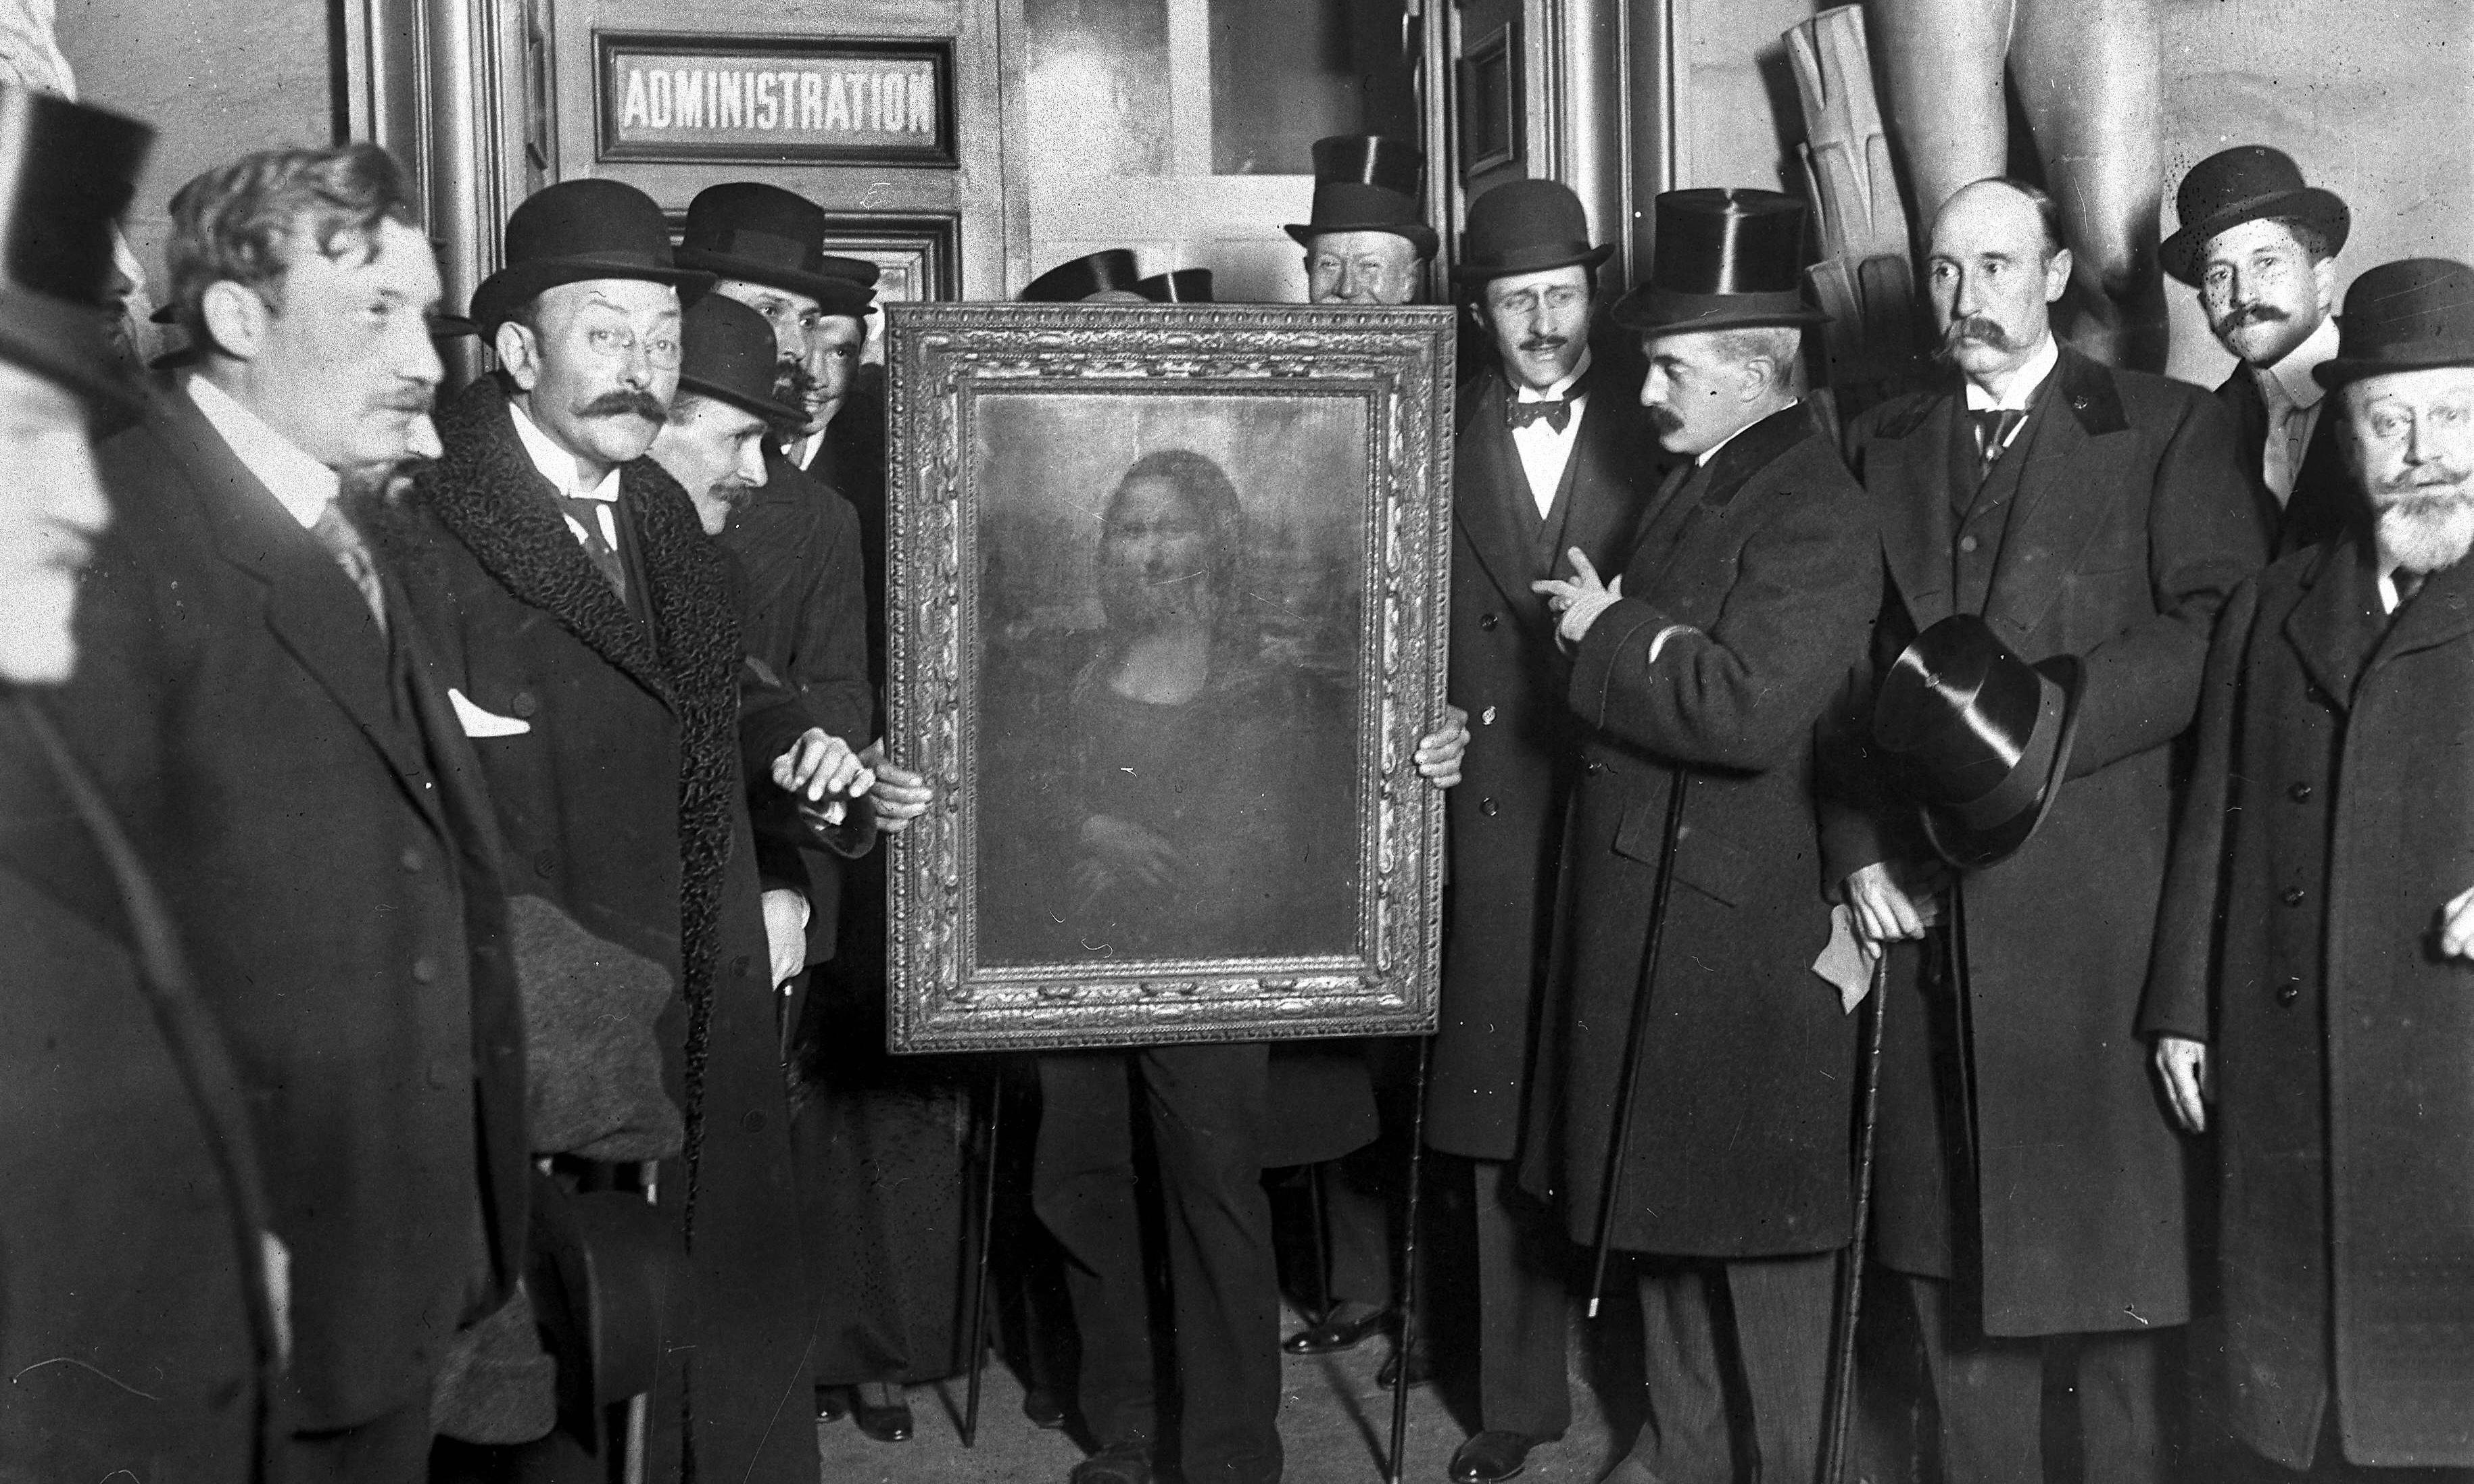 Archive, 23 August 1911: Mona Lisa stolen from Louvre